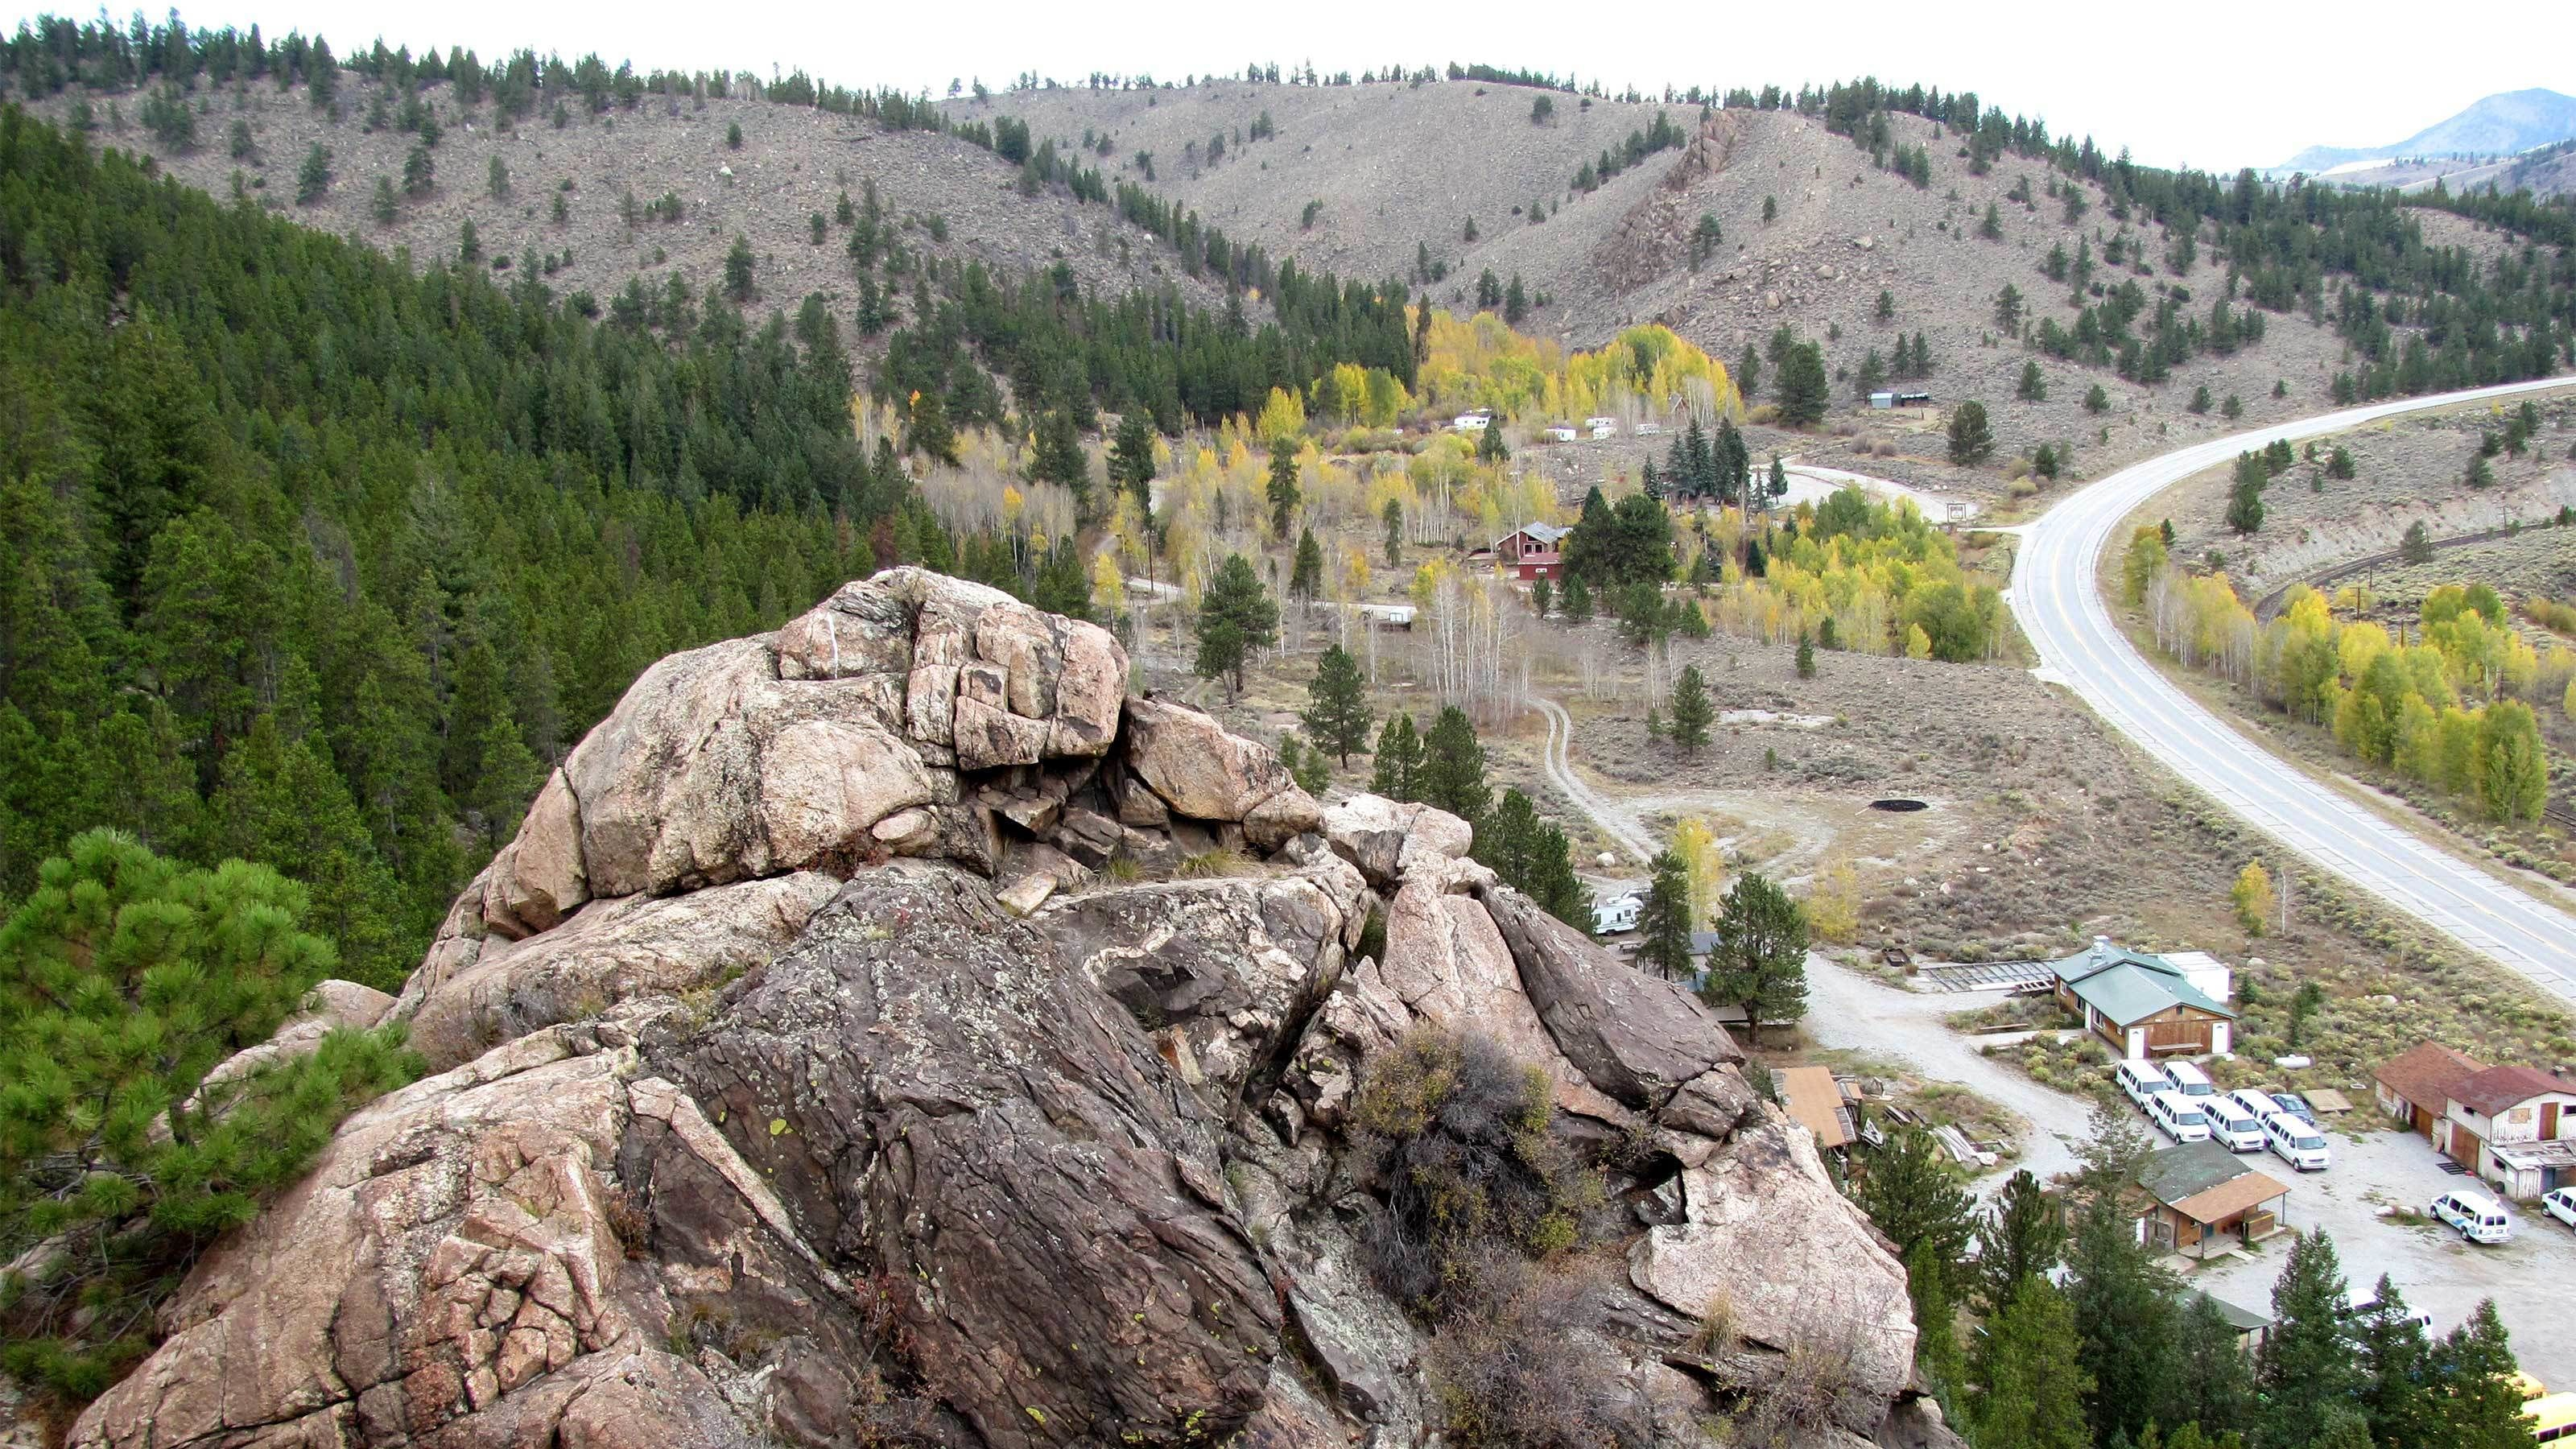 On top of the rock climbing cliff in Denver